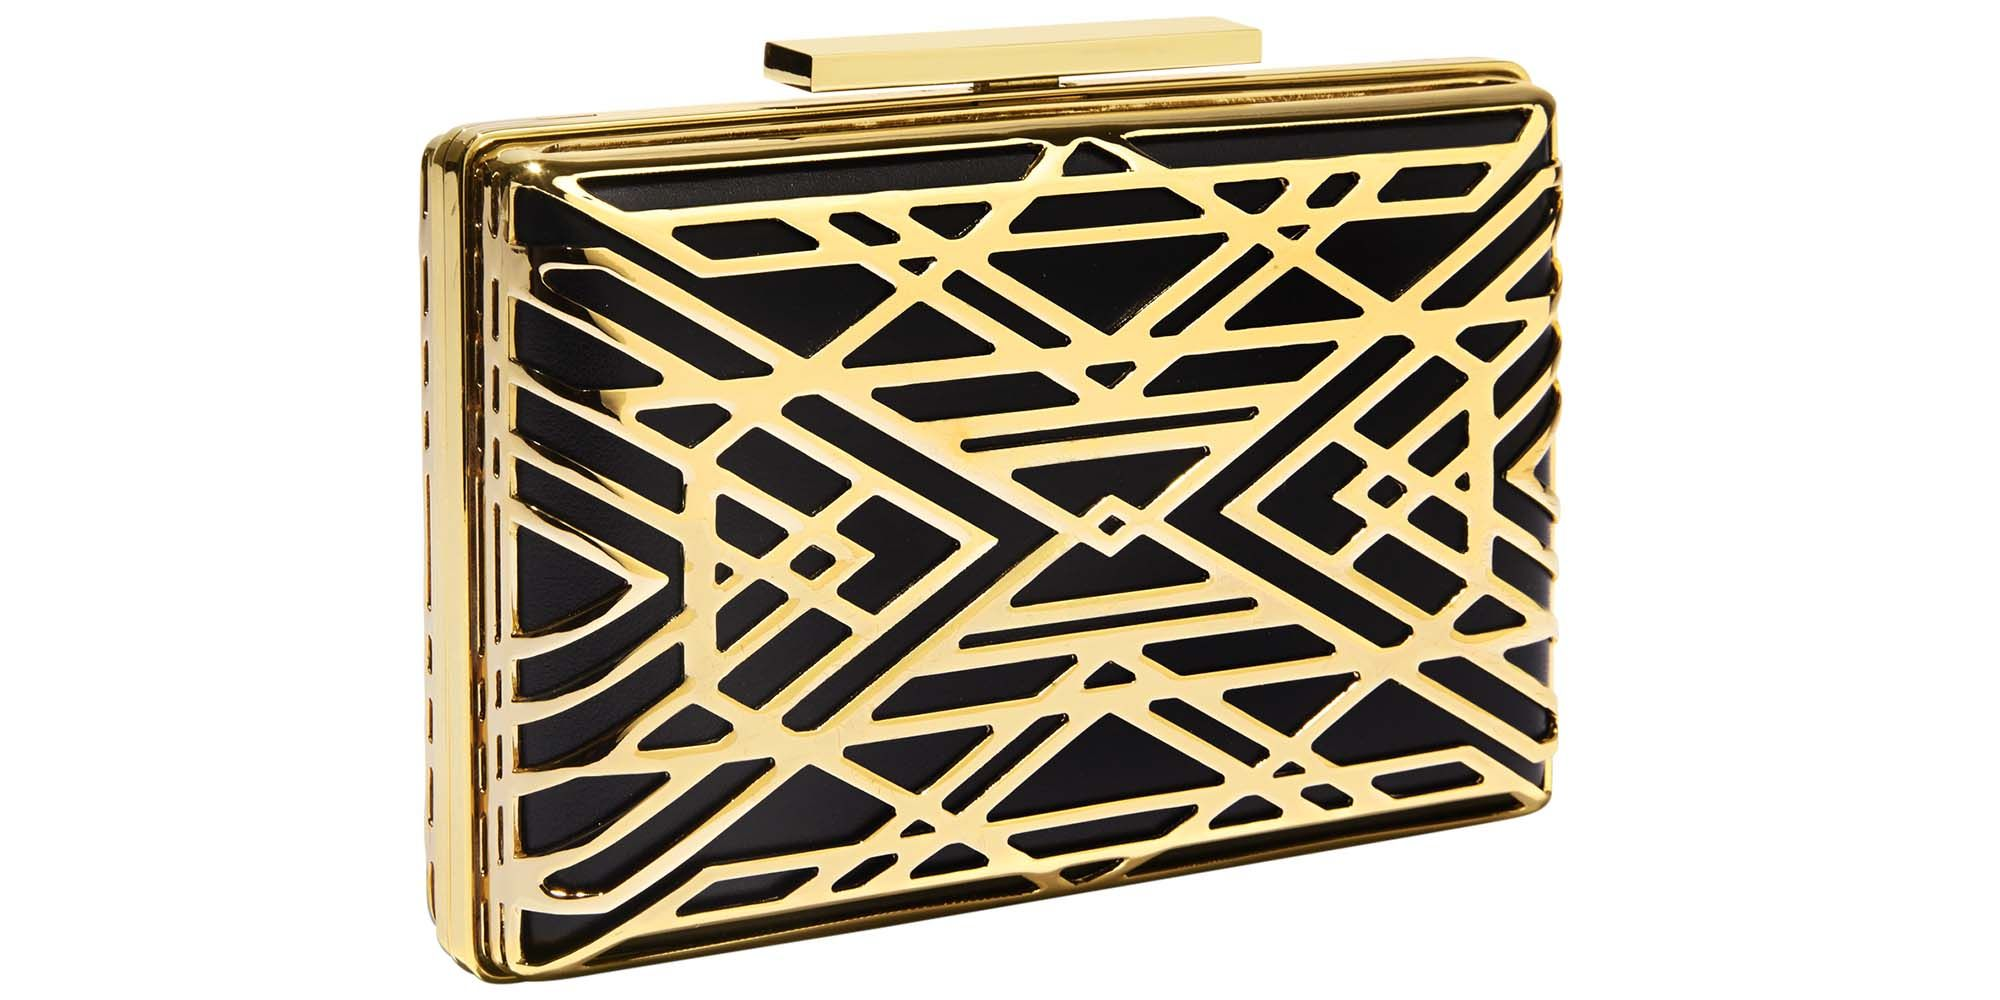 "<p><strong>Vince Camuto </strong>clutch, $198, <a href=""https://www.vincecamuto.com/"" target=""_blank"">vincecamuto.com</a>.</p>"